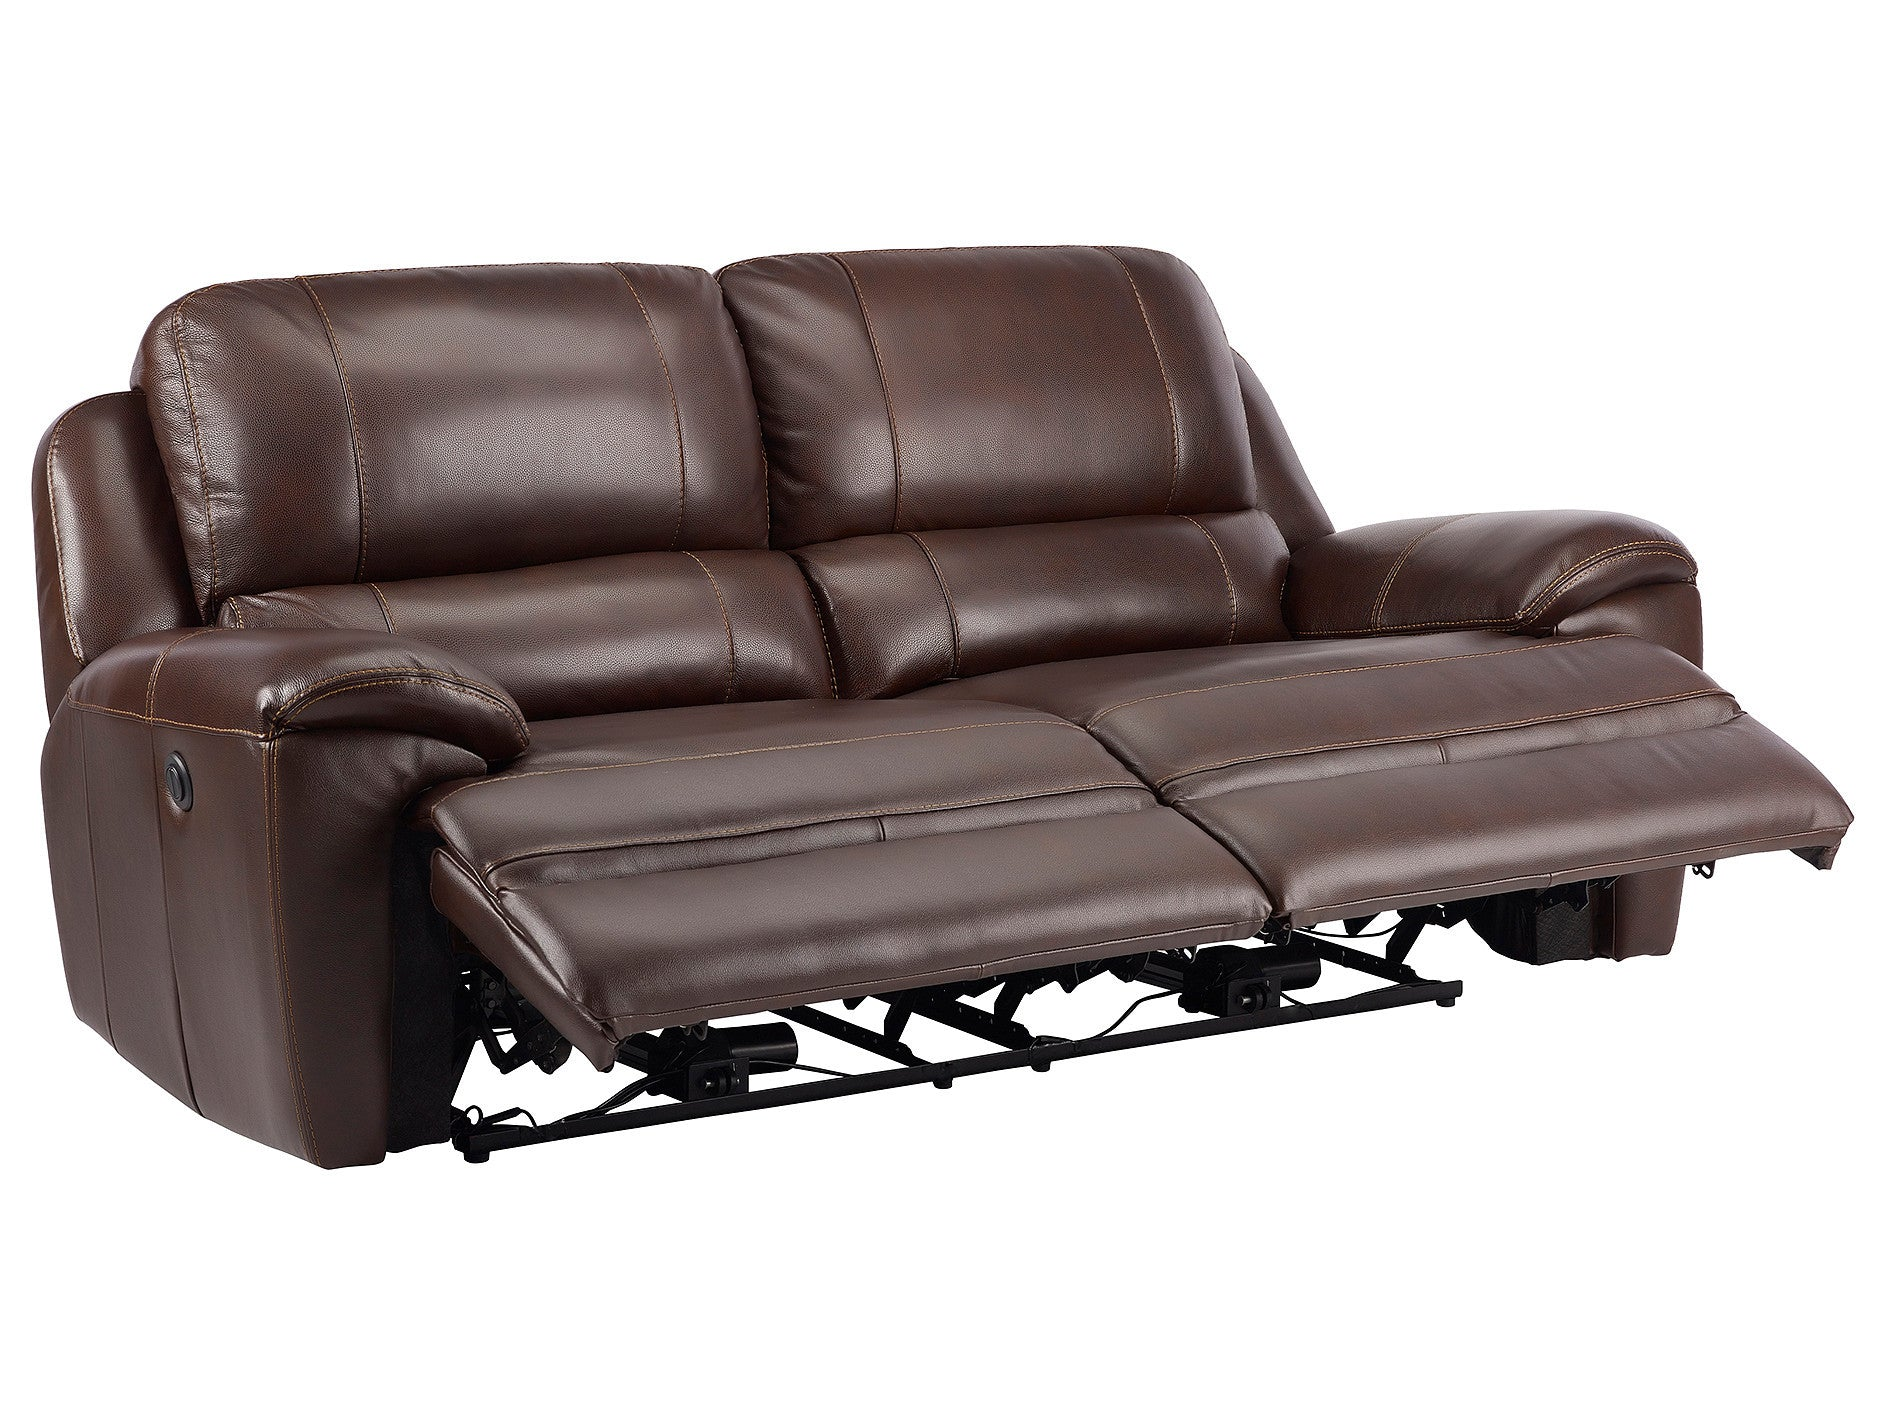 Finley Sofa with 2 Electric Recliners Brown Leather – Sofa